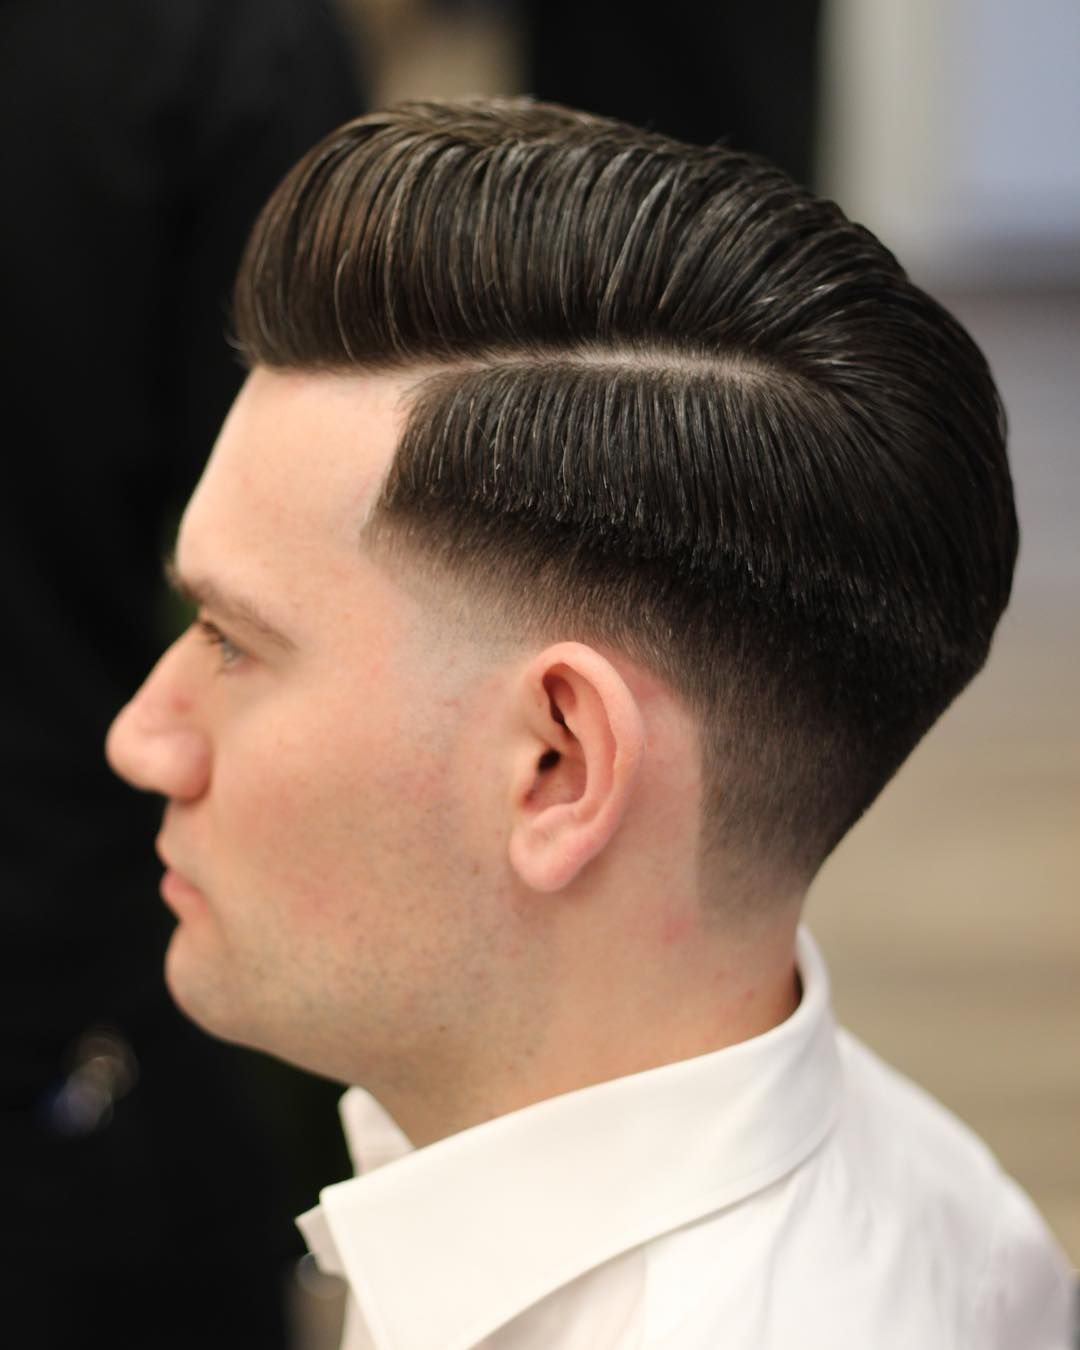 Classic haircut at @ferajnabarbershop #barber #barbershop